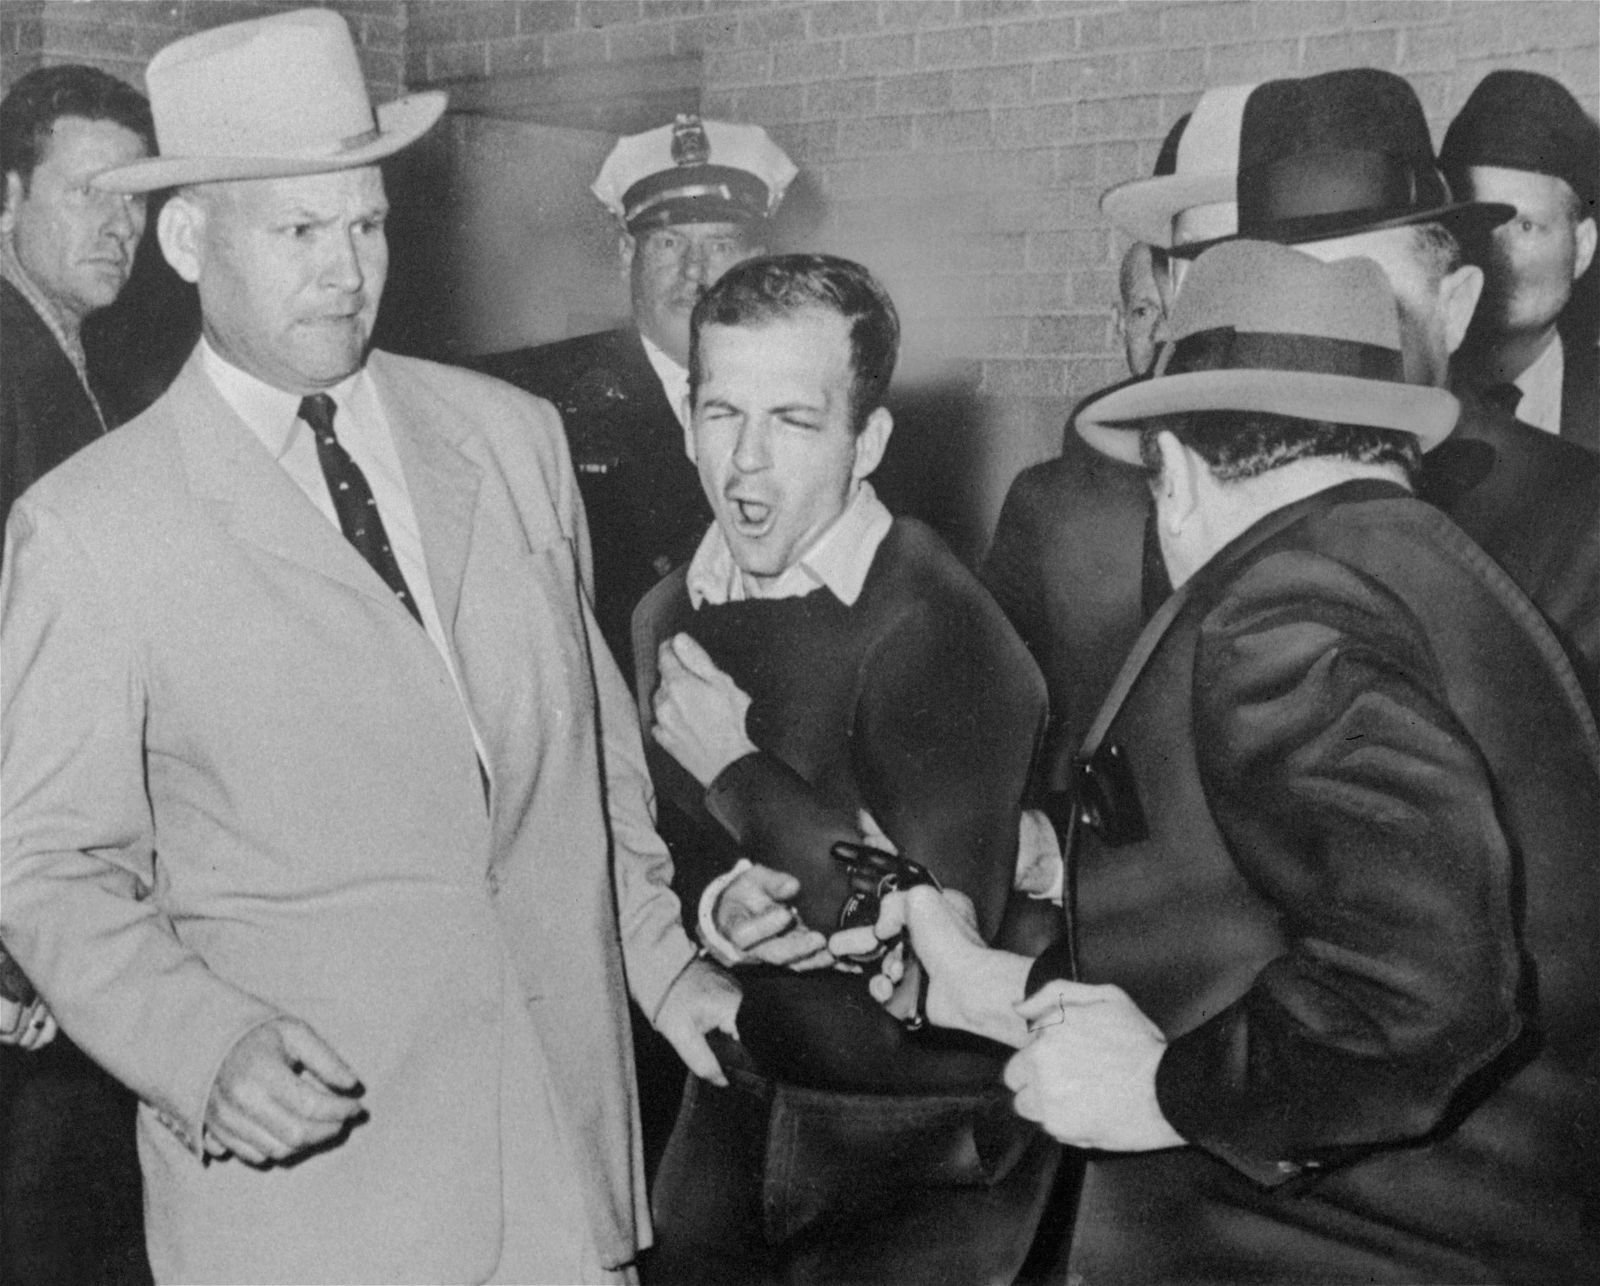 FILE - In this Nov. 24, 1963 file photo, Lee Harvey Oswald reacts as Dallas night club owner Jack Ruby, foreground, shoots at him from point blank range in a corridor of Dallas police headquarters At left is Detective Jim Leavelle. The longtime Dallas lawman who was captured in one of history's most iconic photographs as he escorted President John F. Kennedy's assassin moments before he was fatally shot, has died on Thursday, Aug. 29, 2019. He was 99. (Bob Jackson/Dallas Times-Herald via AP)